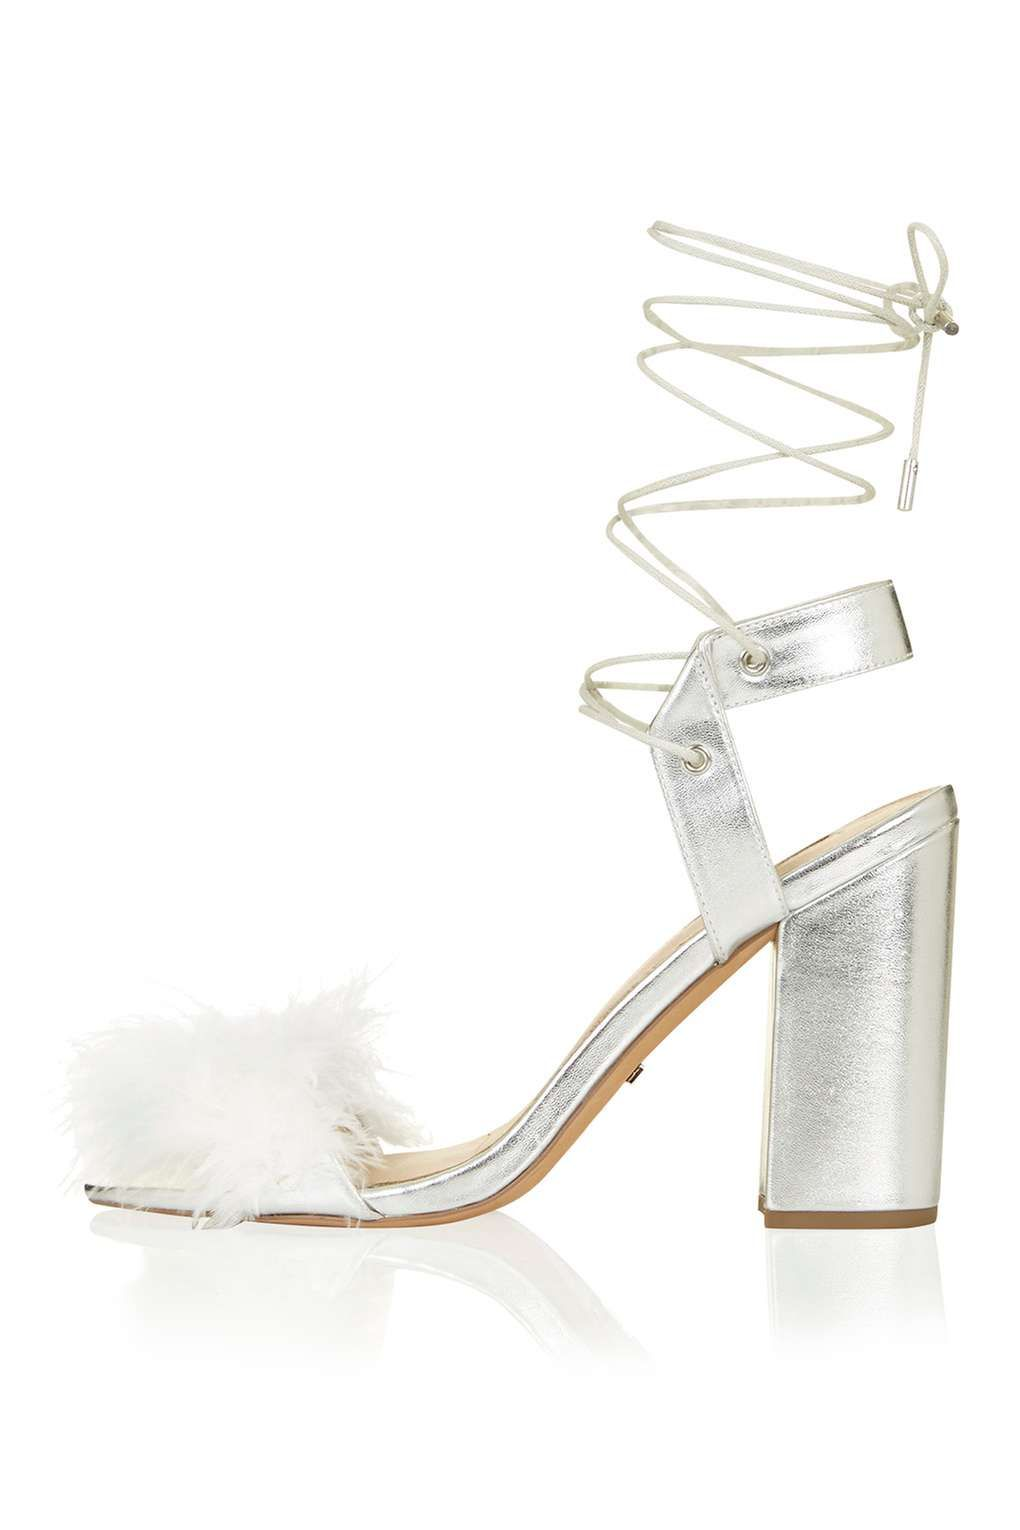 65321f7719f RUFFLE Feather Sandals - Going Out - Clothing